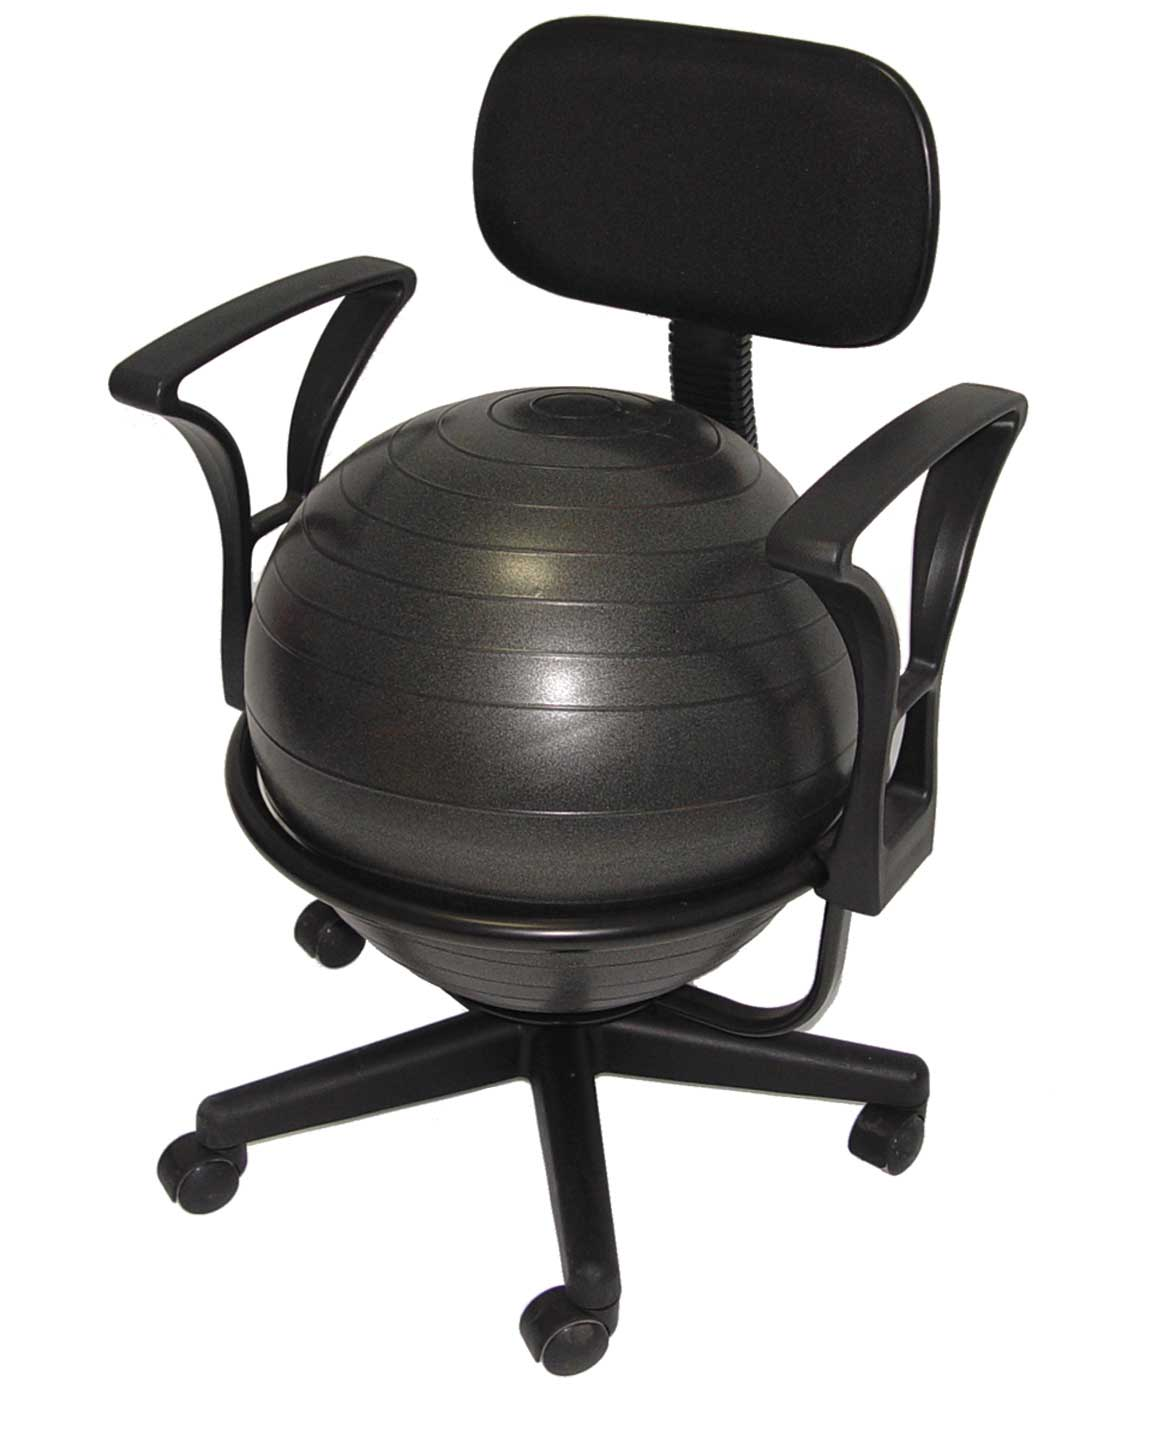 Yoga Ball Desk Chair Exercise Ball Chair Reviews Office Furniture